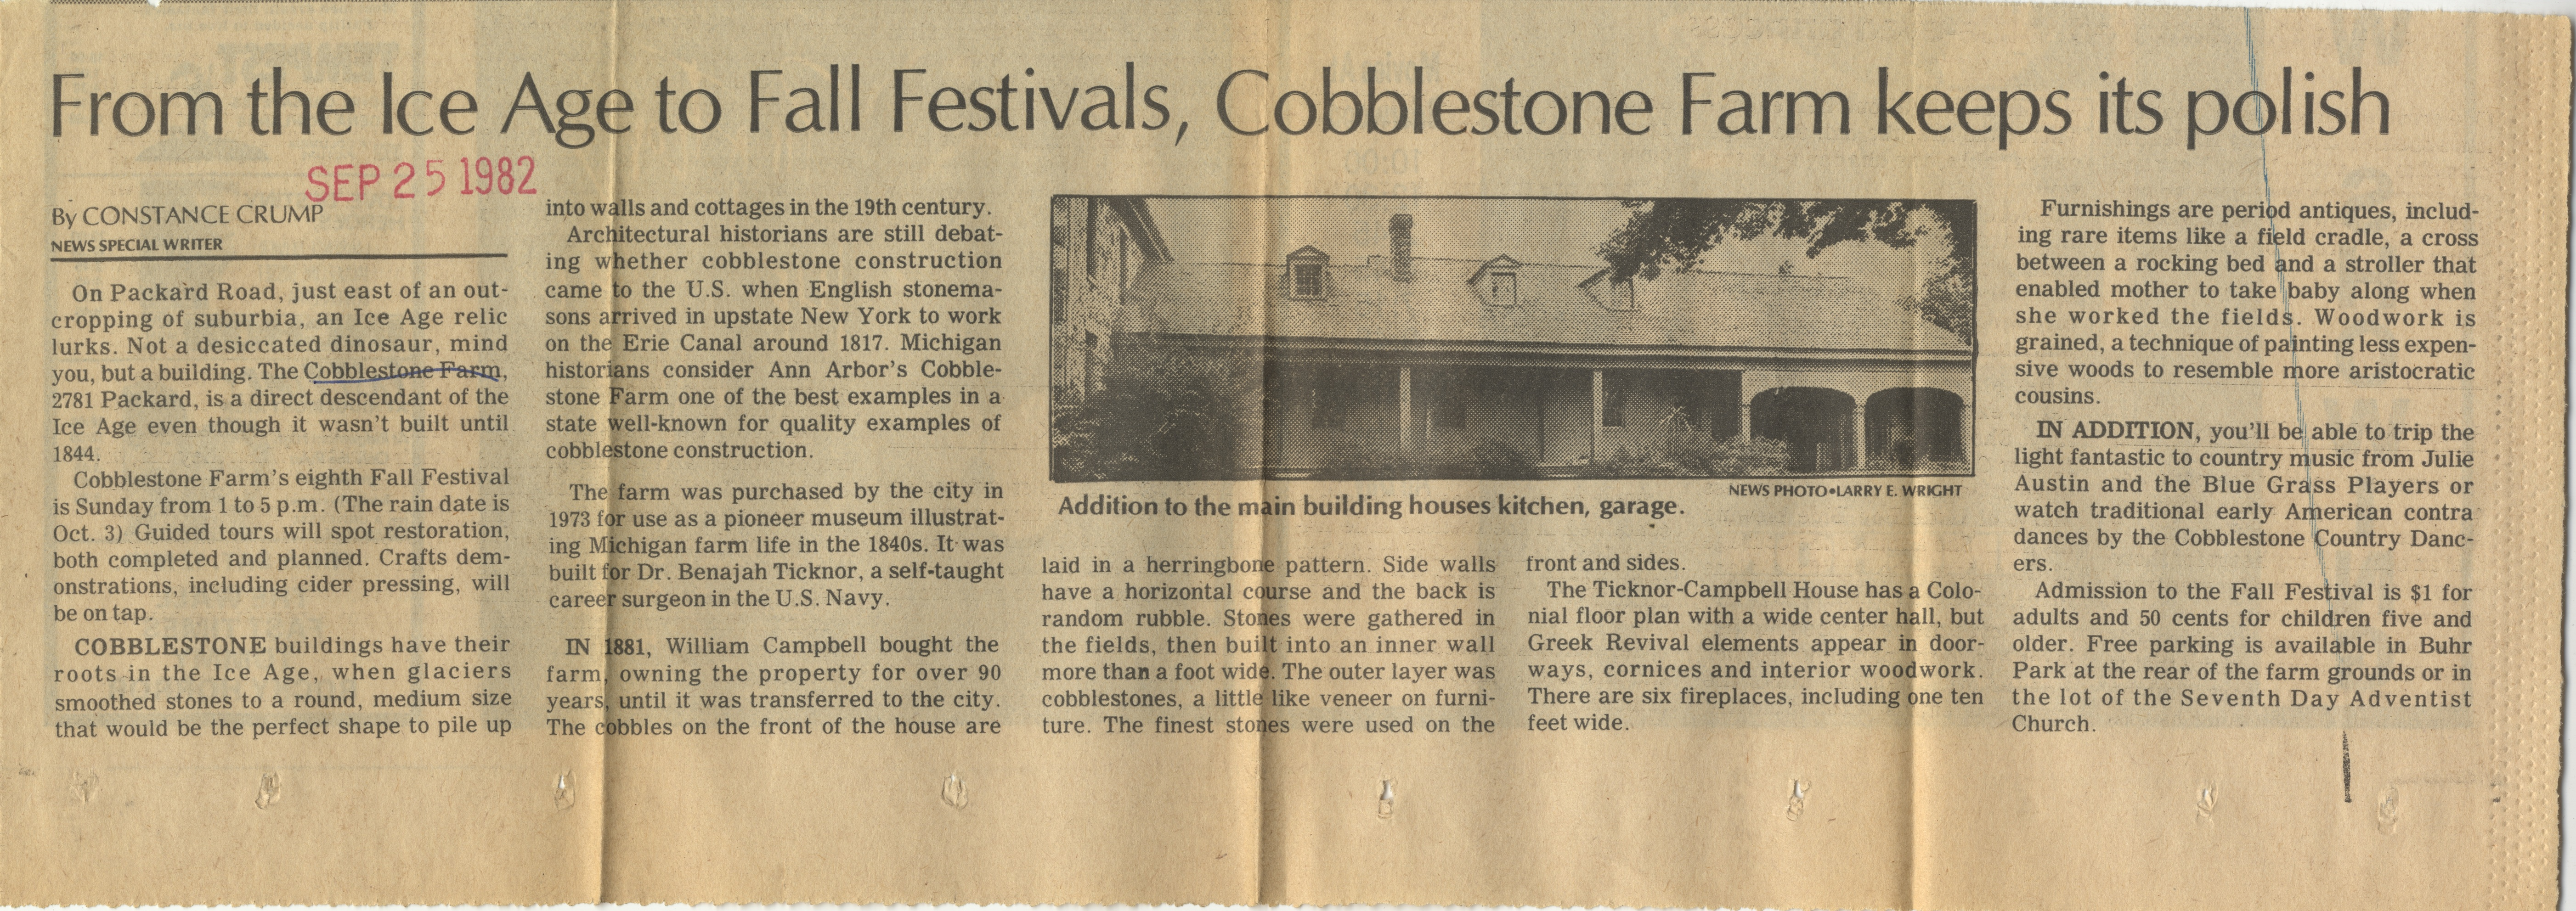 From The Ice Age To Fall Festivals, Cobblestone Farm Keeps Its Polish image